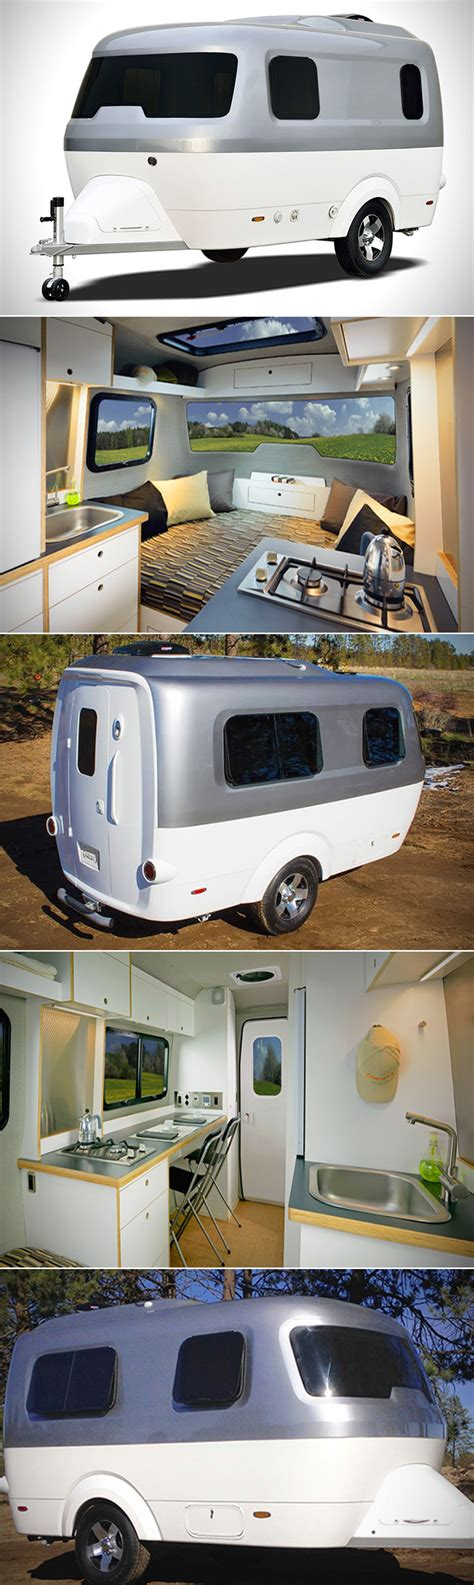 Airstream Nest Has a Kitchen, Work Area, Bed and is